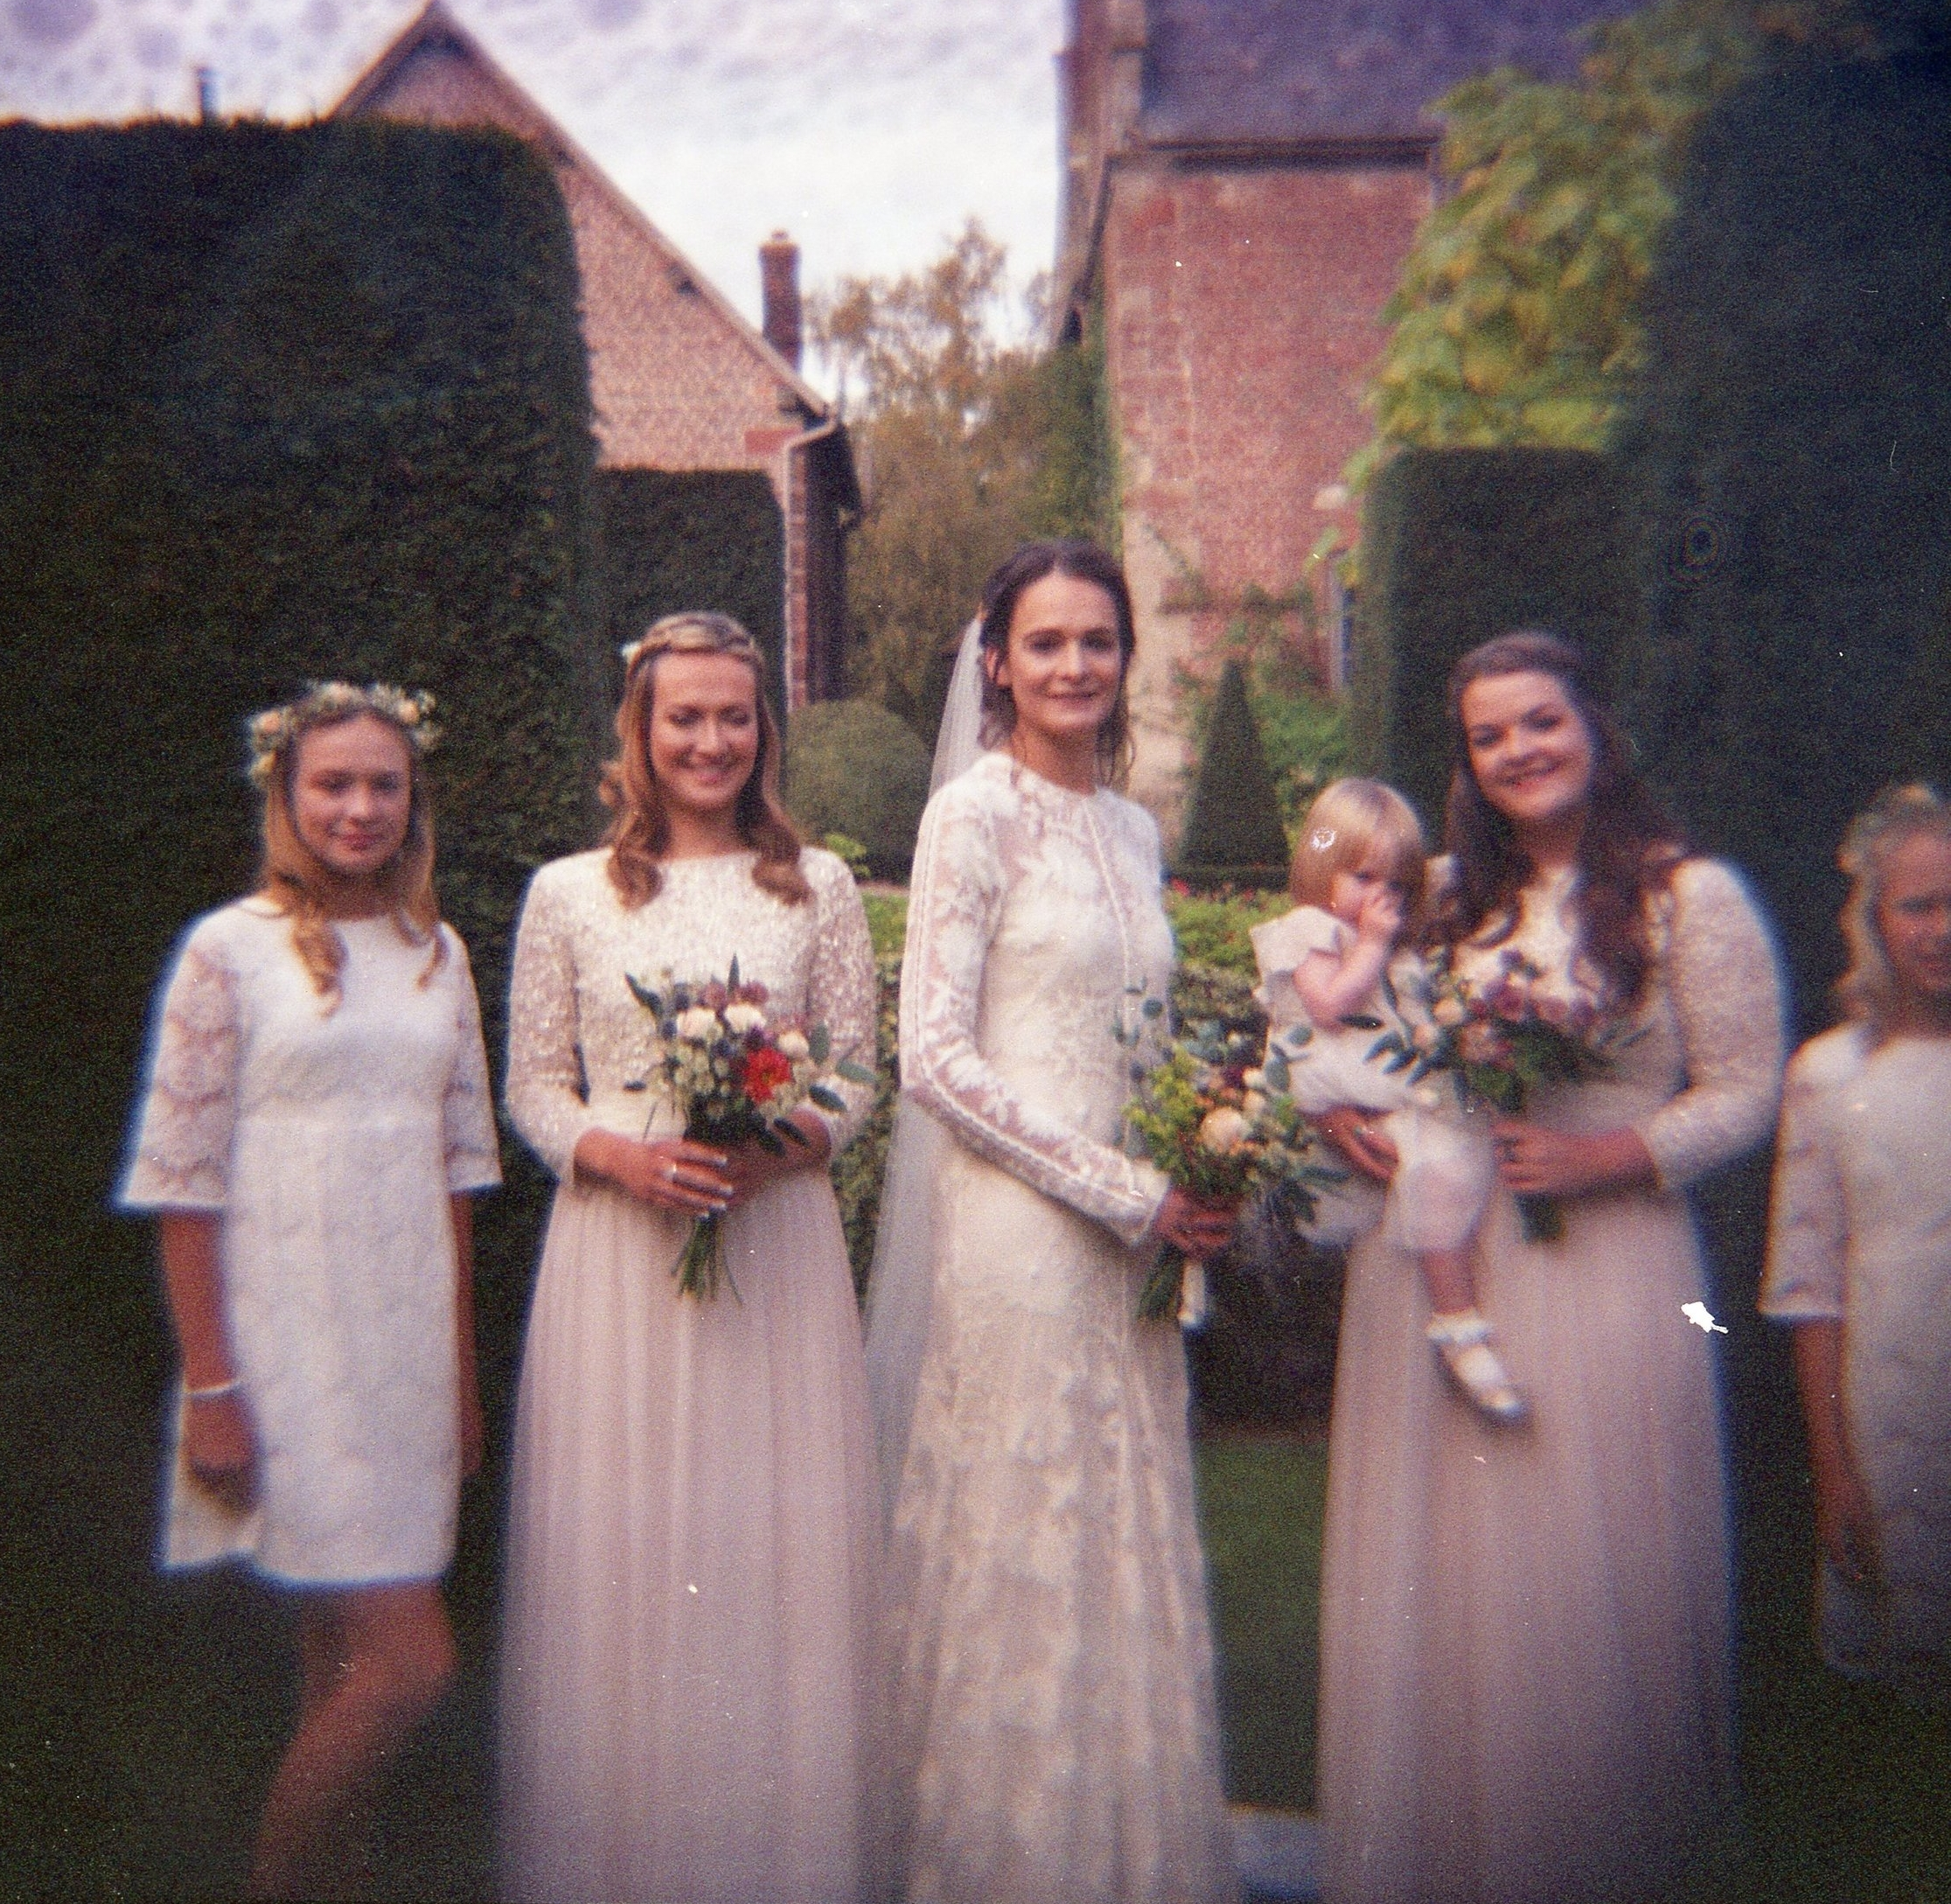 Camillas bridal party imperfect Diana Film photo taken at Pimhill Barn 2016